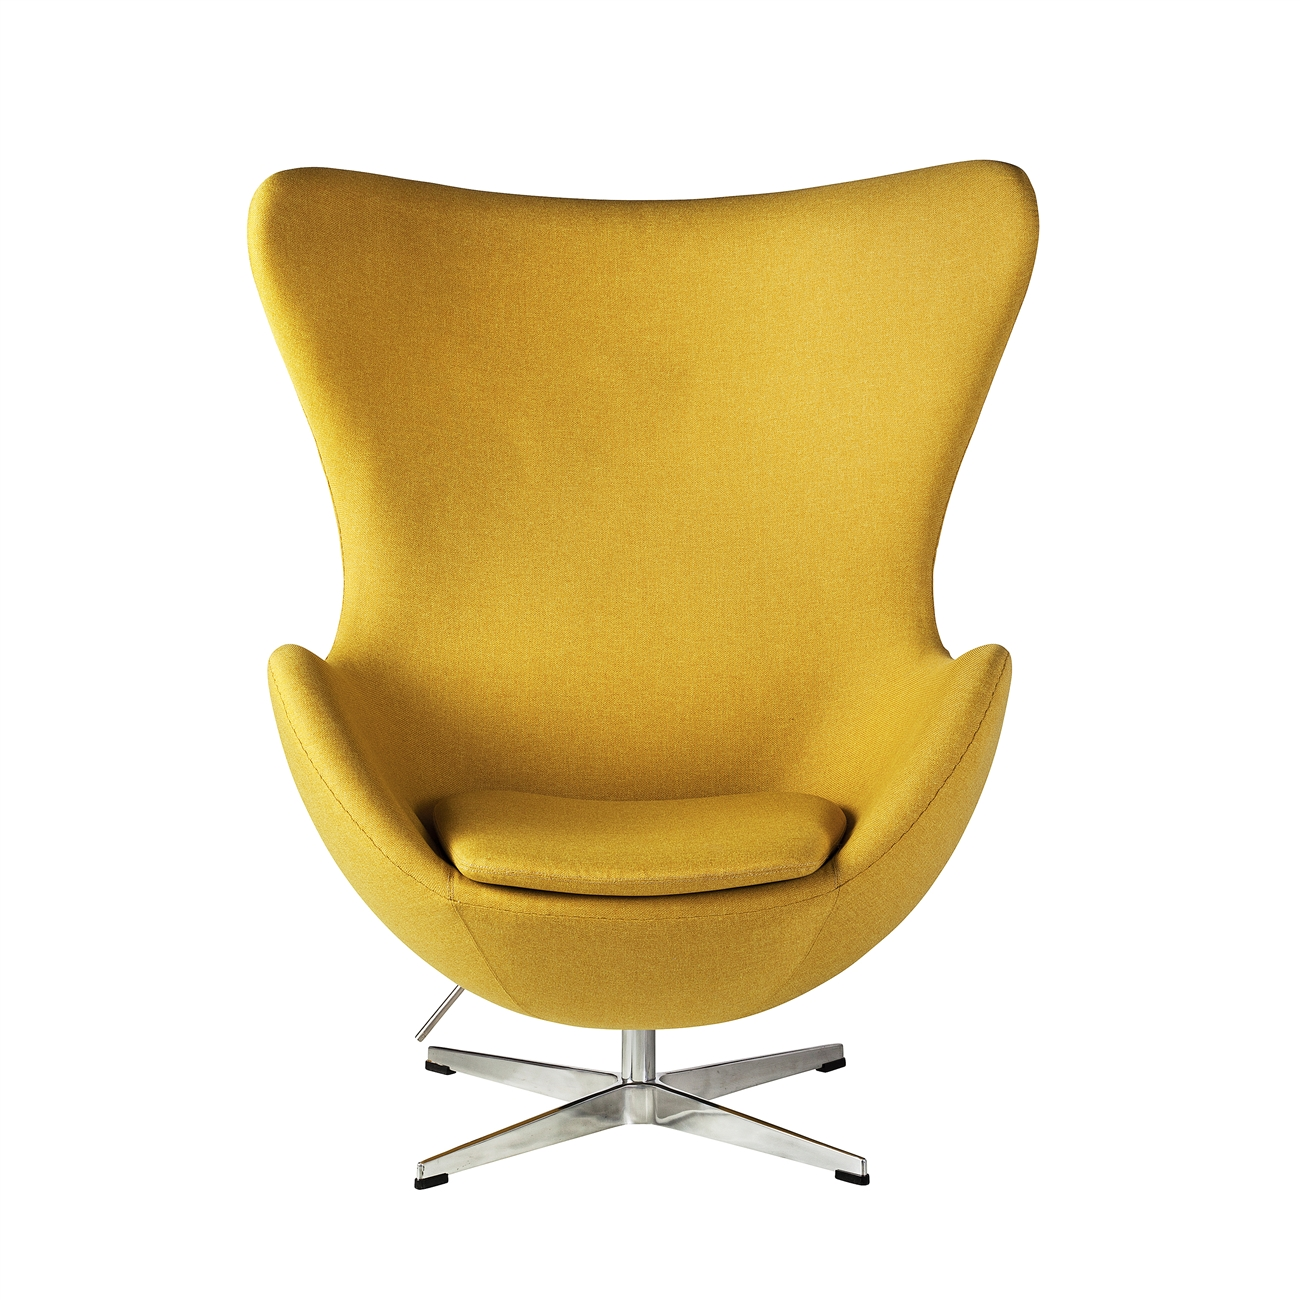 Yellow Egg Chair Arne Jacobsen Inspired Egg Swivel Chair In Yellow The